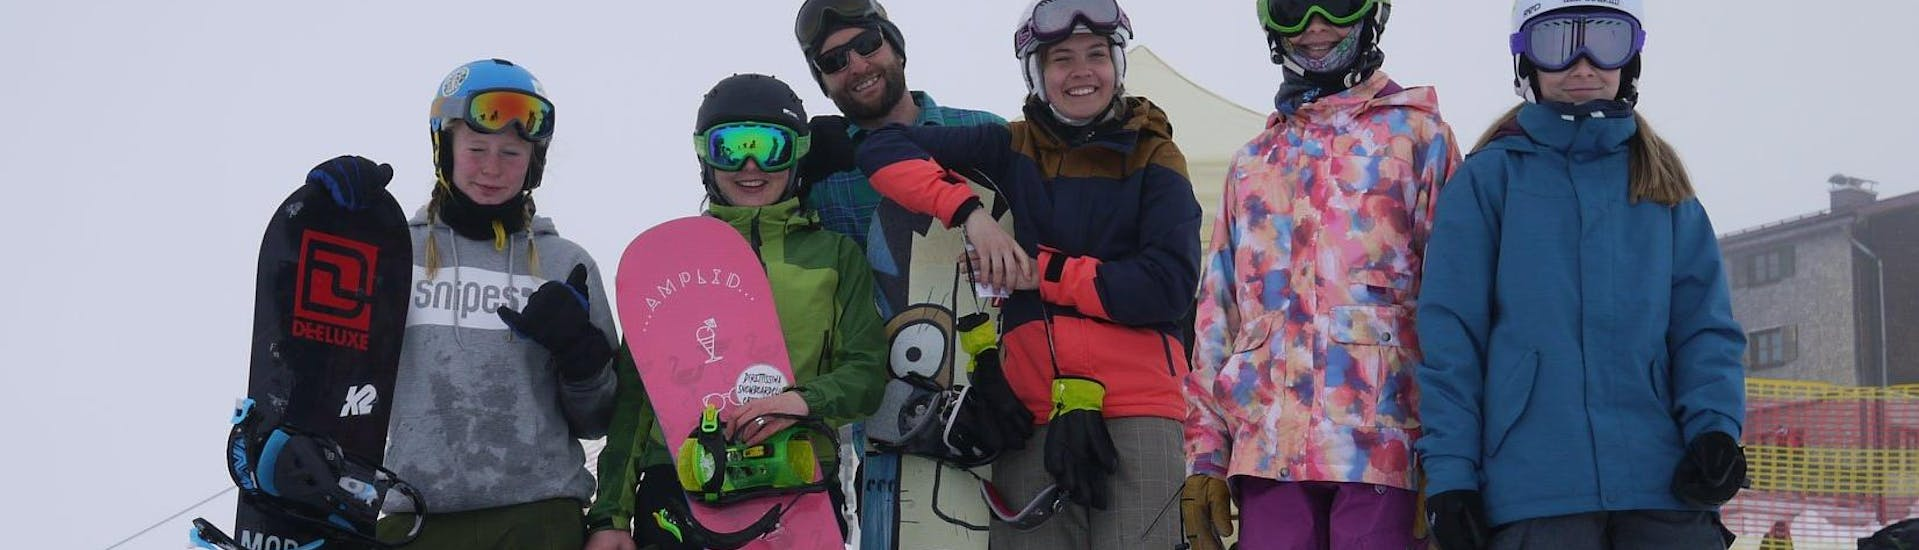 Snowboarders are taking picture as a memory of the Off-Piste Snowboarding Lessons - All Levels organised by the school Out of Bounds Snowboard School.